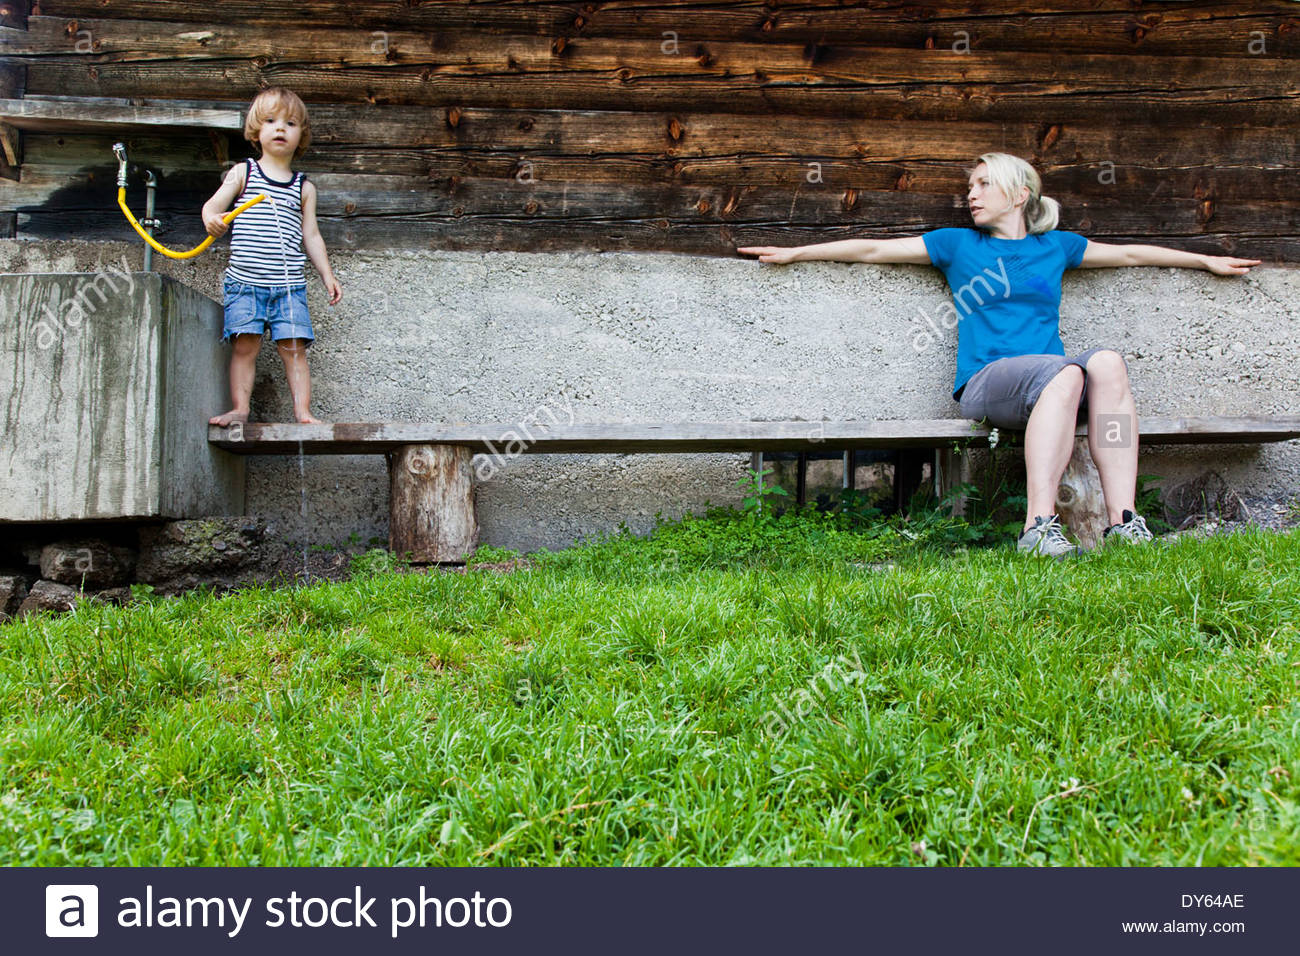 Woman and child on a bench infront of a farmhouse, Kloaschau Valley, Bayrischzell, Bavaria, Germany - Stock Image